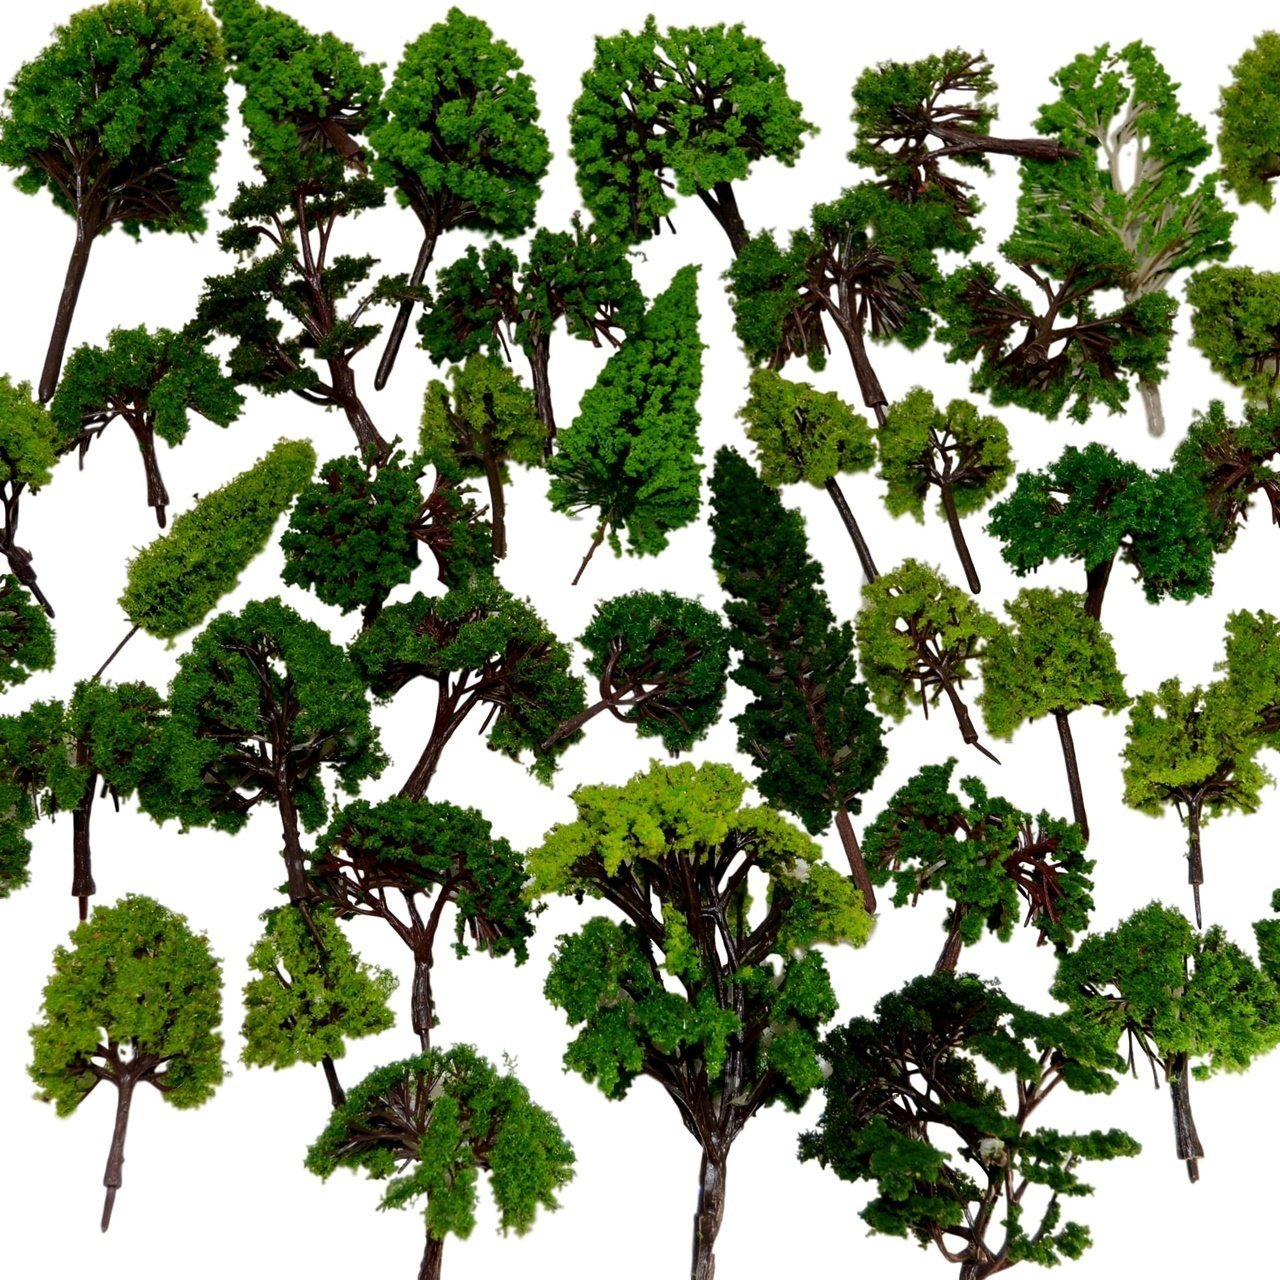 NW 32pcs Mixed Model Trees Model Train Scenery Architecture Trees Model Scenery with No Stands 0.79 6.30inch